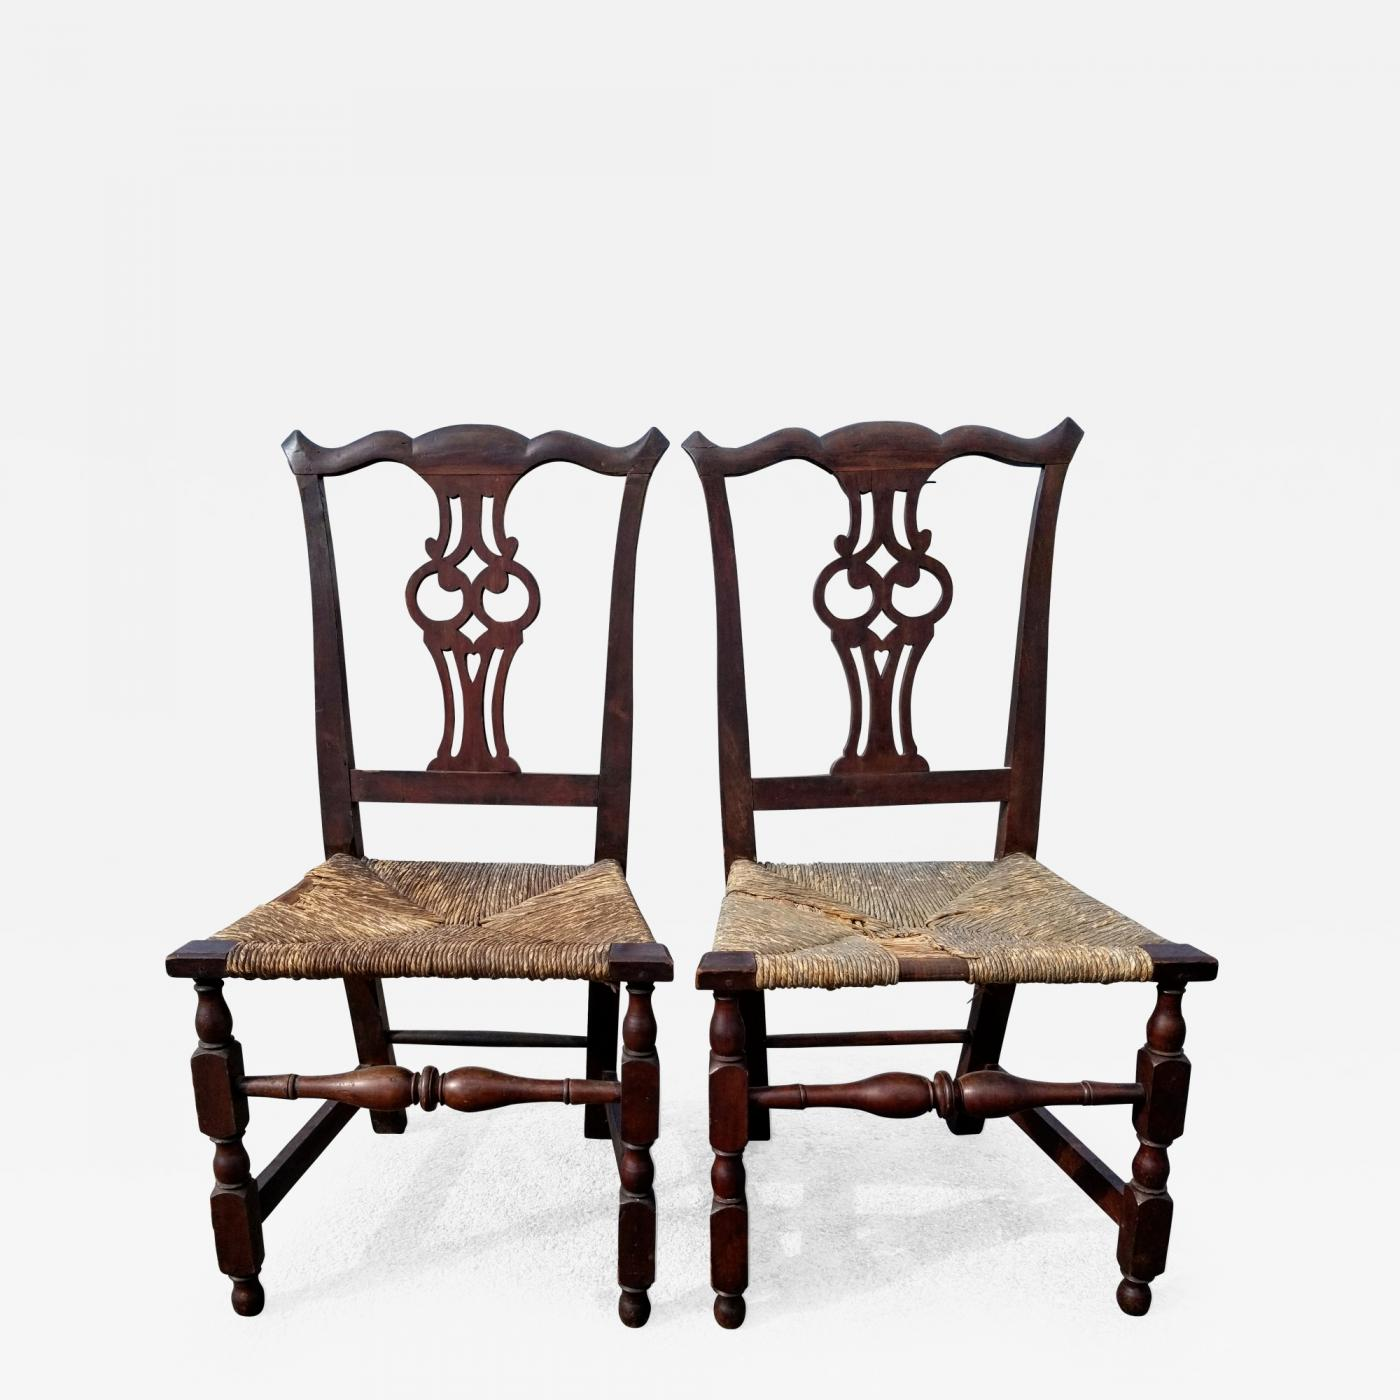 Rare Matched Pair Of Transitional Chippendale Chairs Salem Mass